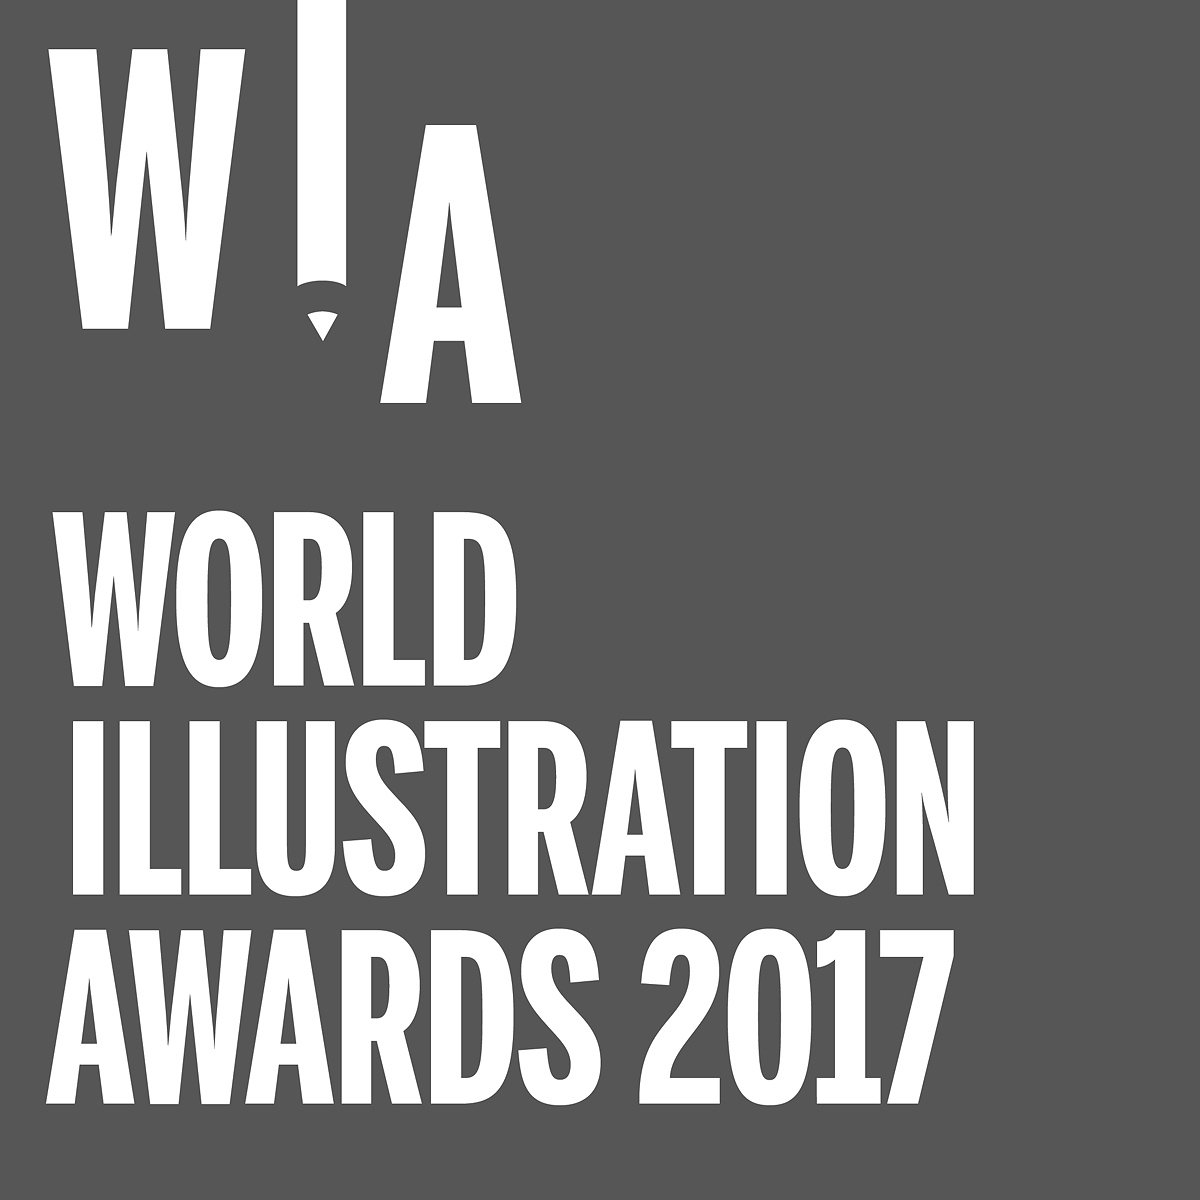 World Illustration Awards 2017 - Call for Entries